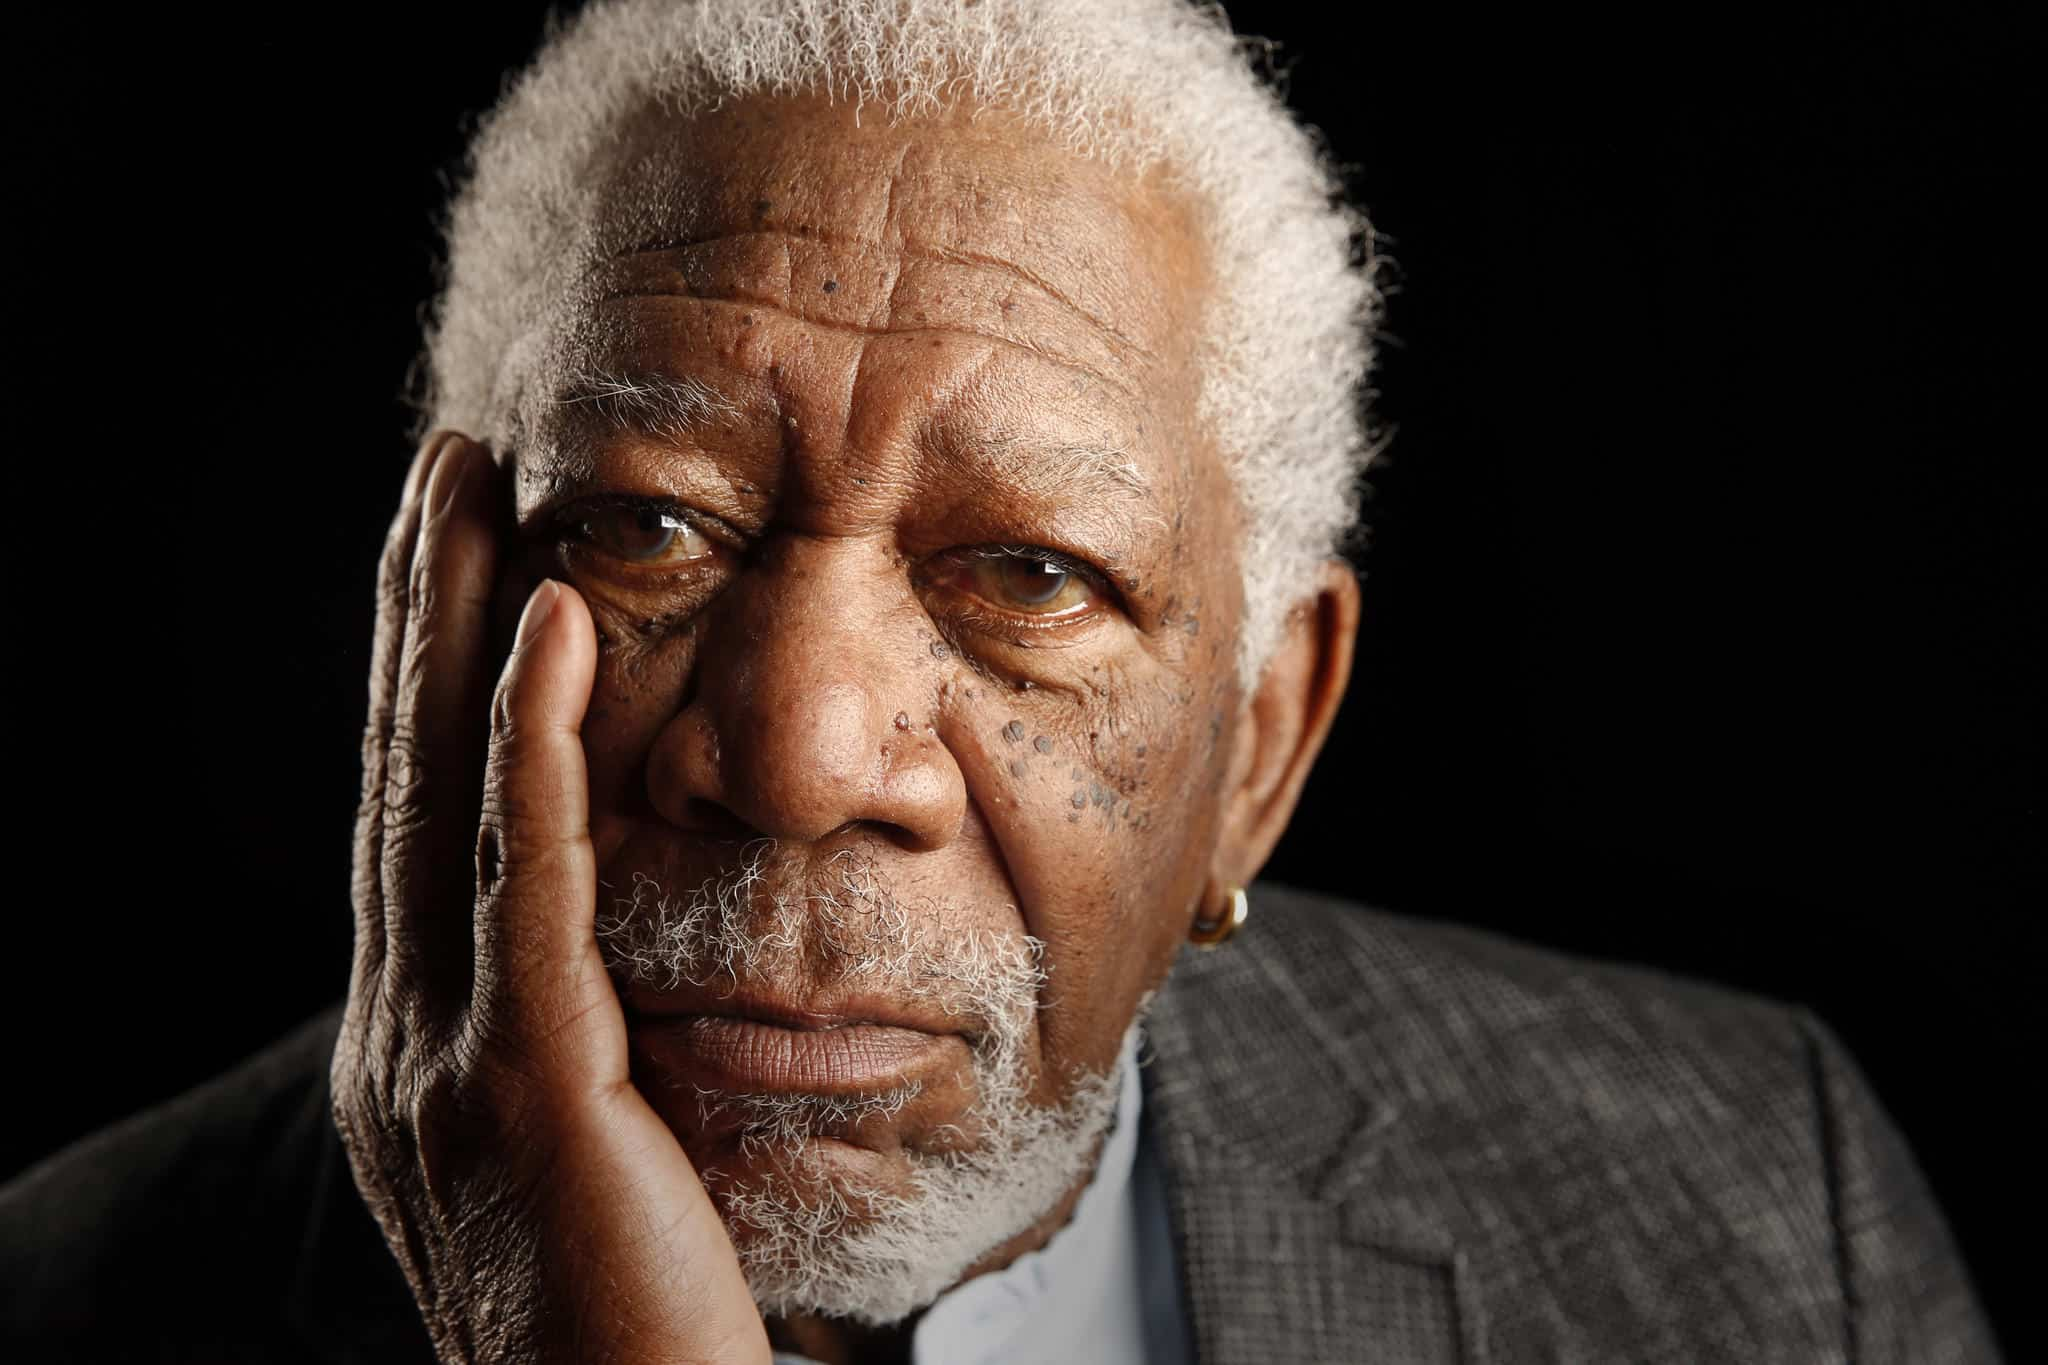 morgan freeman apologises after sexual harassment accusations